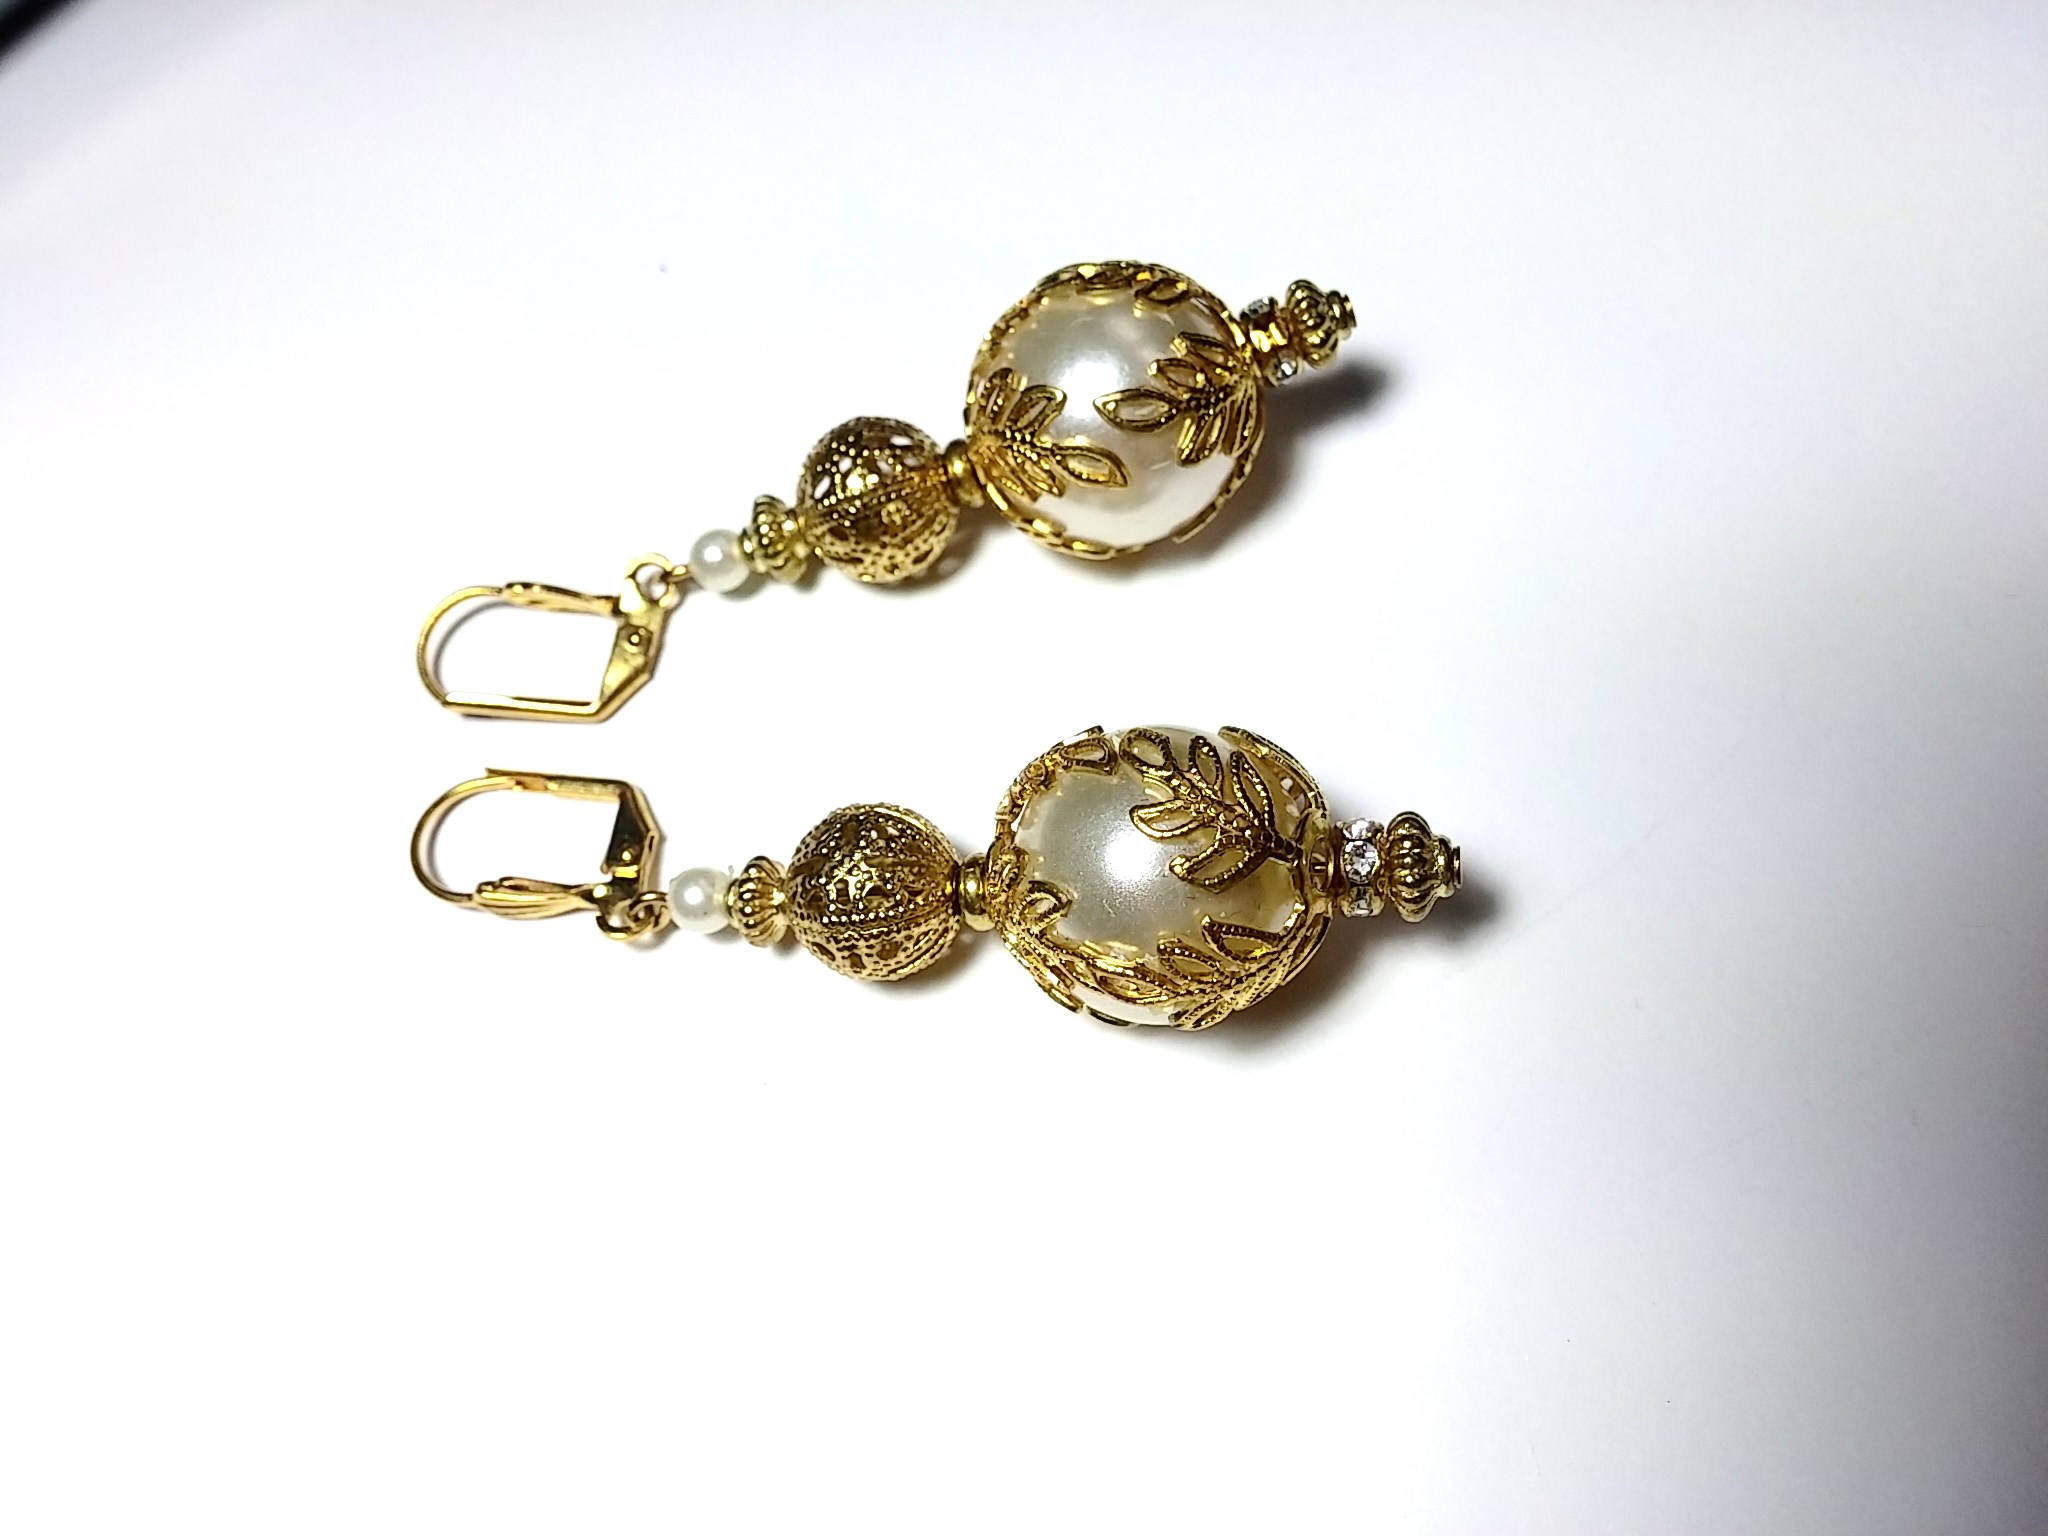 Ornate With Elegance - 13mm White Pearl Drop Earrings